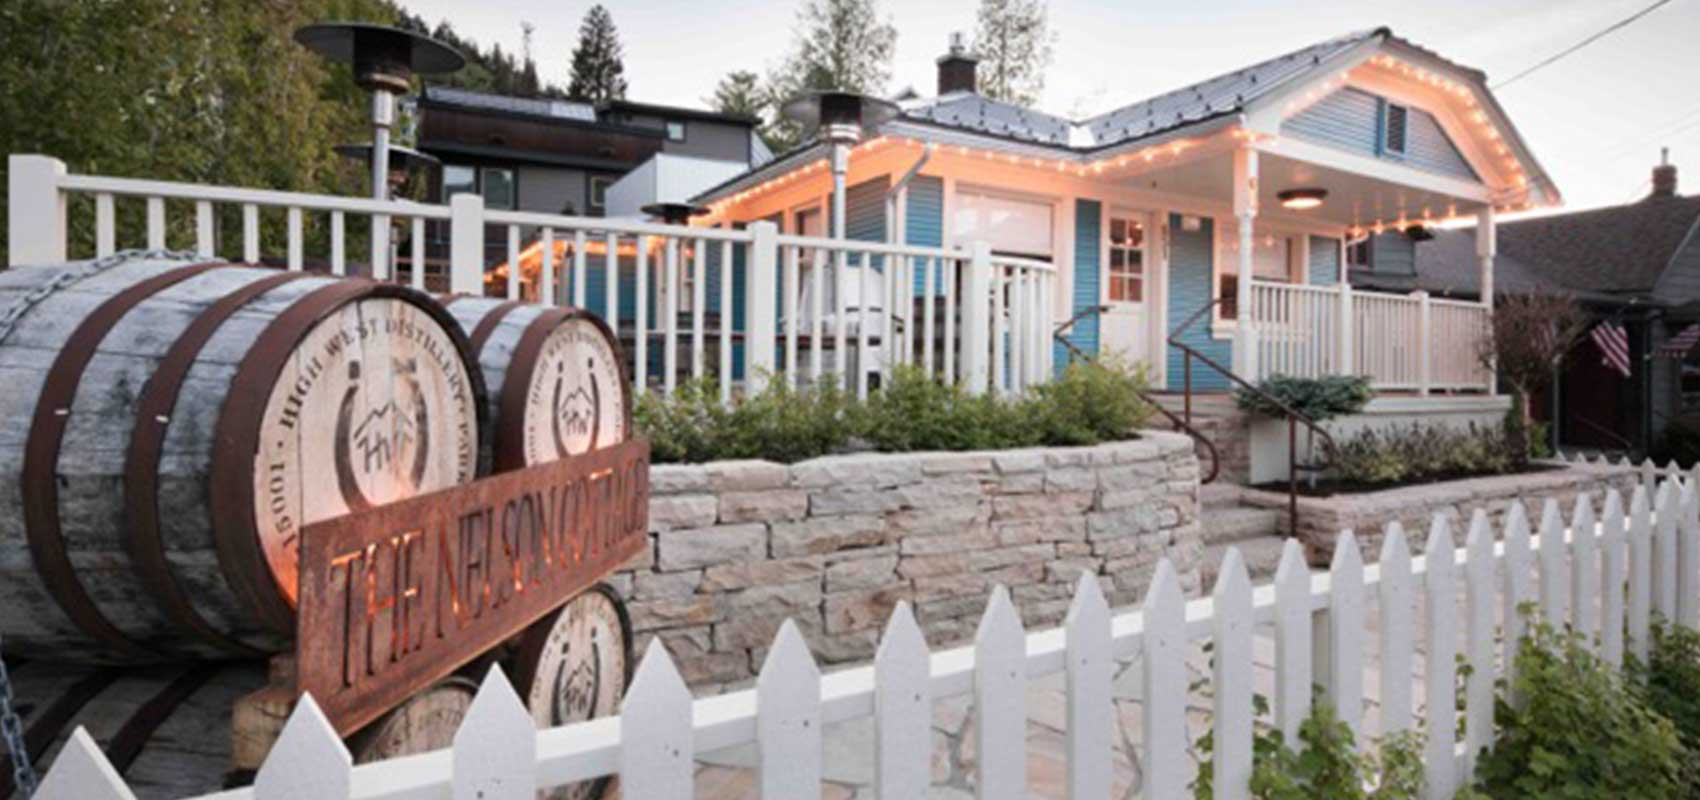 Nelson Cottage by High West Offers Summer Dining Image